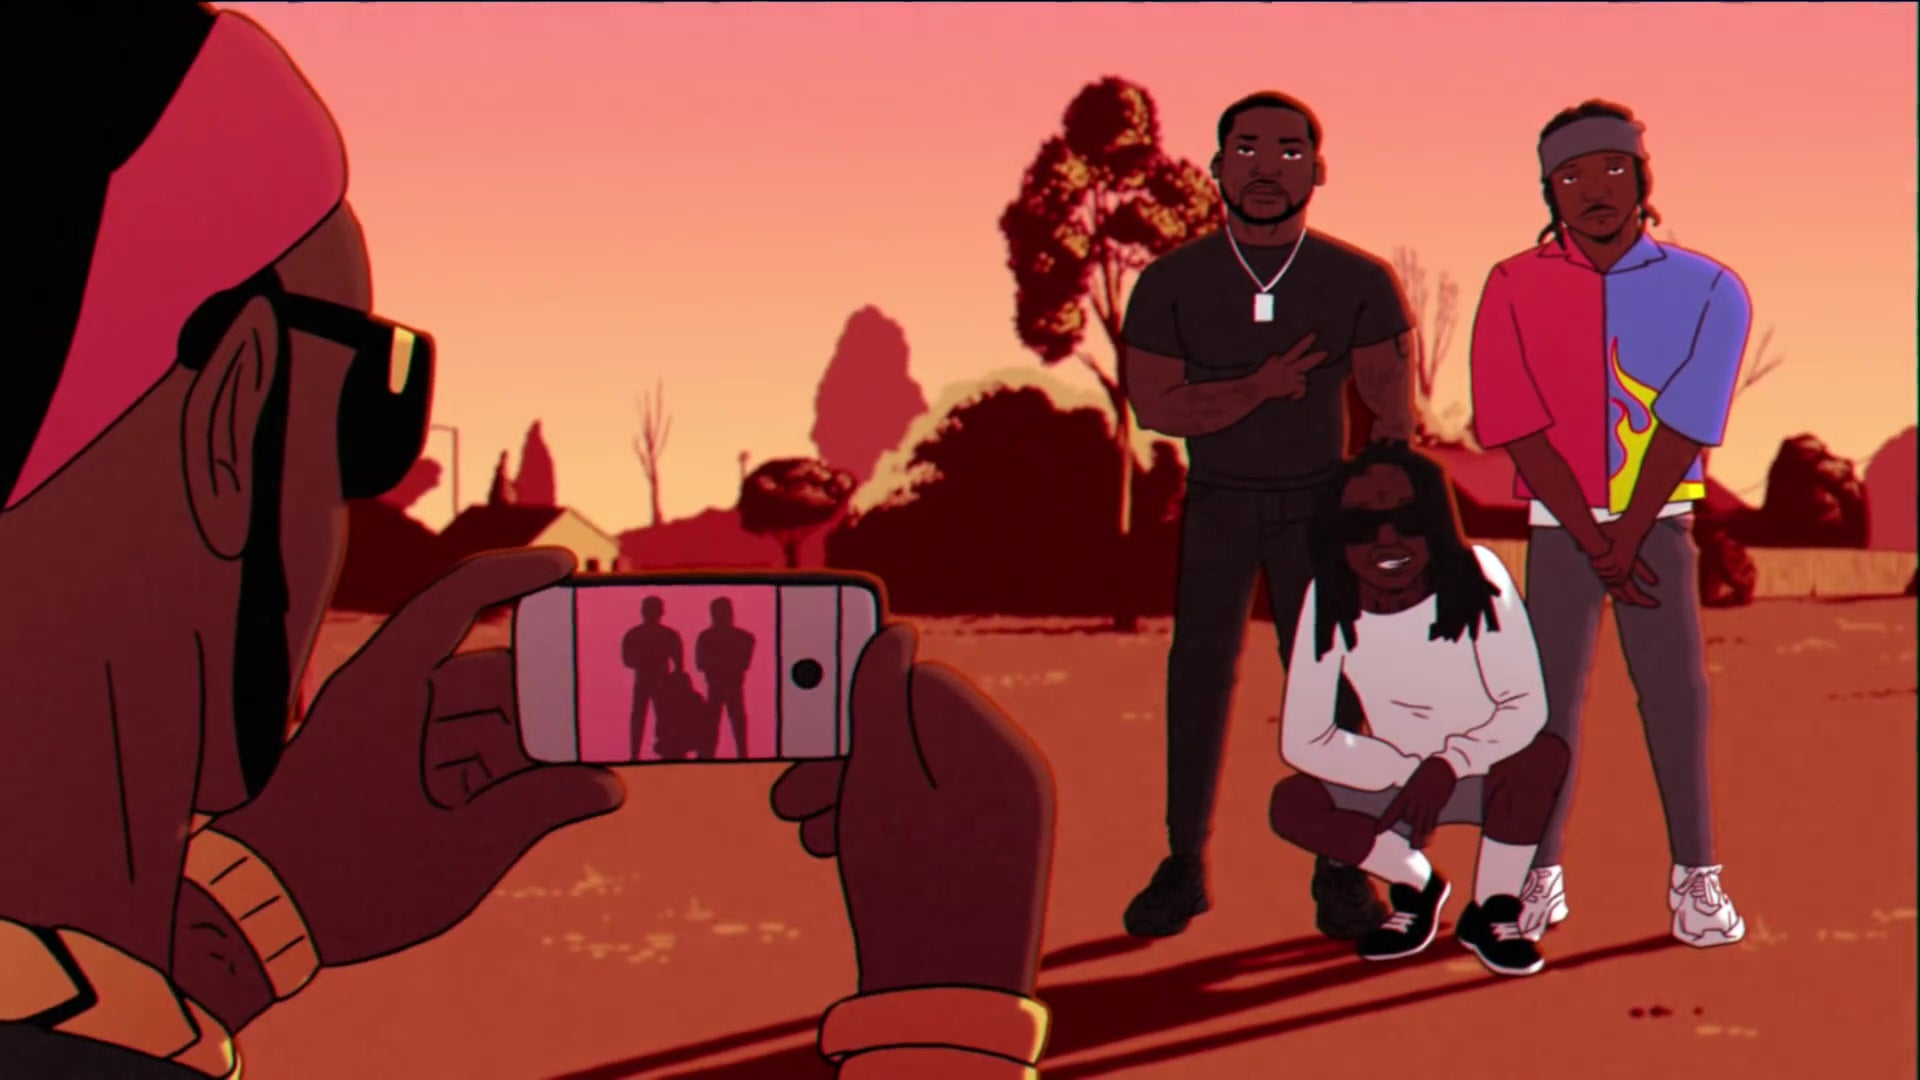 A man who appears to be 2 Chainz (he's seen only from the back) snaps a photo of Meek Mill (left), Pusha T (right, in his flames shirt), and Lil Wayne (bottom).